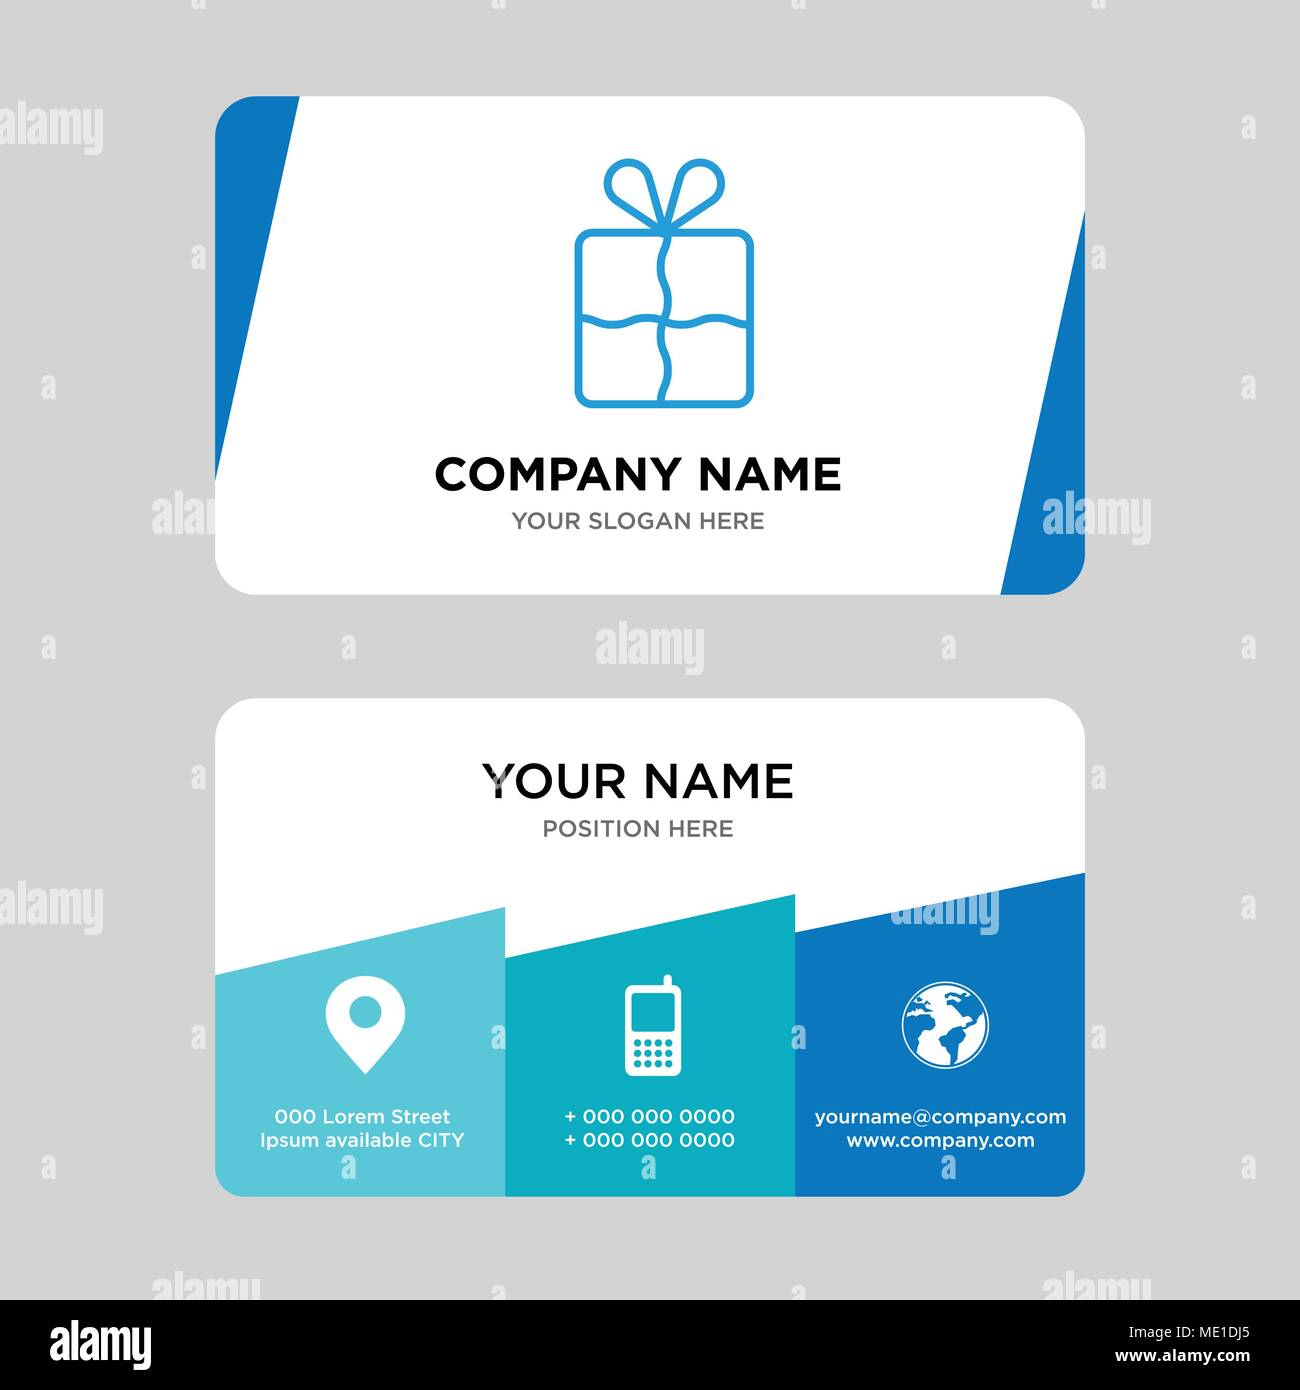 Bookmark Design Template from c8.alamy.com